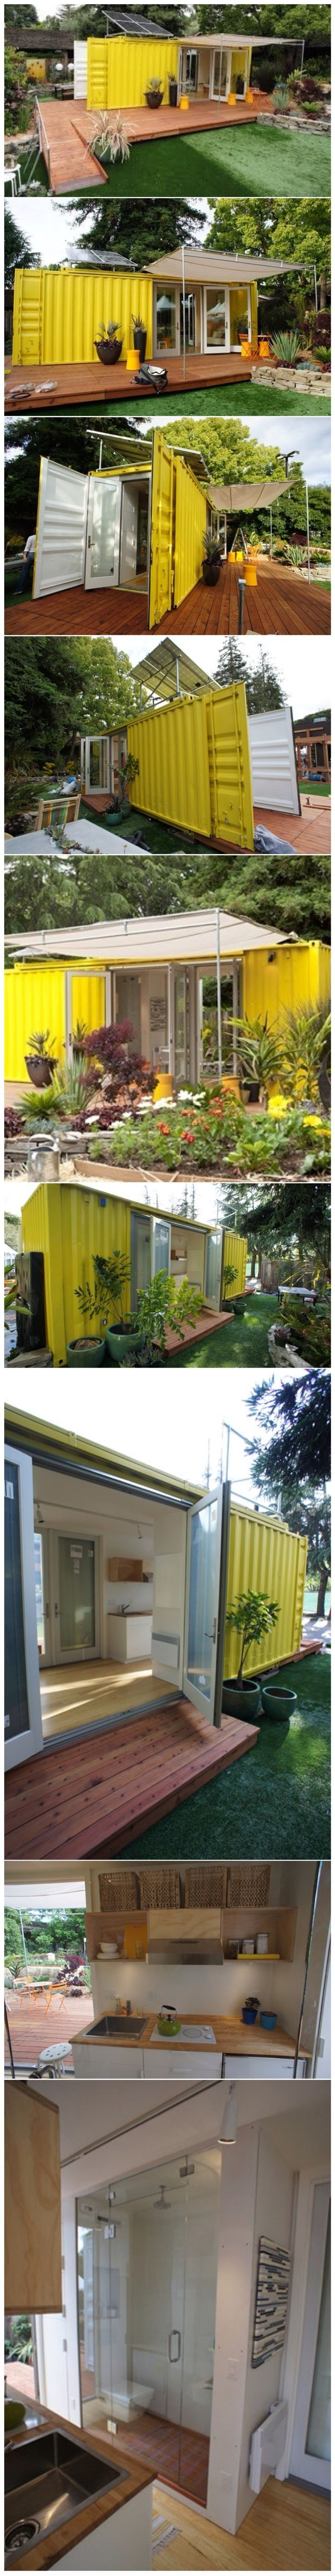 """via www.cargotecture.com This little shipping container house called """"The Nomad"""" was designed for Sunset Magazine by Seattle-Based HyBrid Architecture. The home's shell is a used 24 foot shipping container that provides 192 sq. ft. of interior living space and can sleep four people. The house has a galley kitchen, a bathroom and several exterior openings.  ~ Great pin! For Oahu architectural design visit http://ownerbuiltdesign.com"""